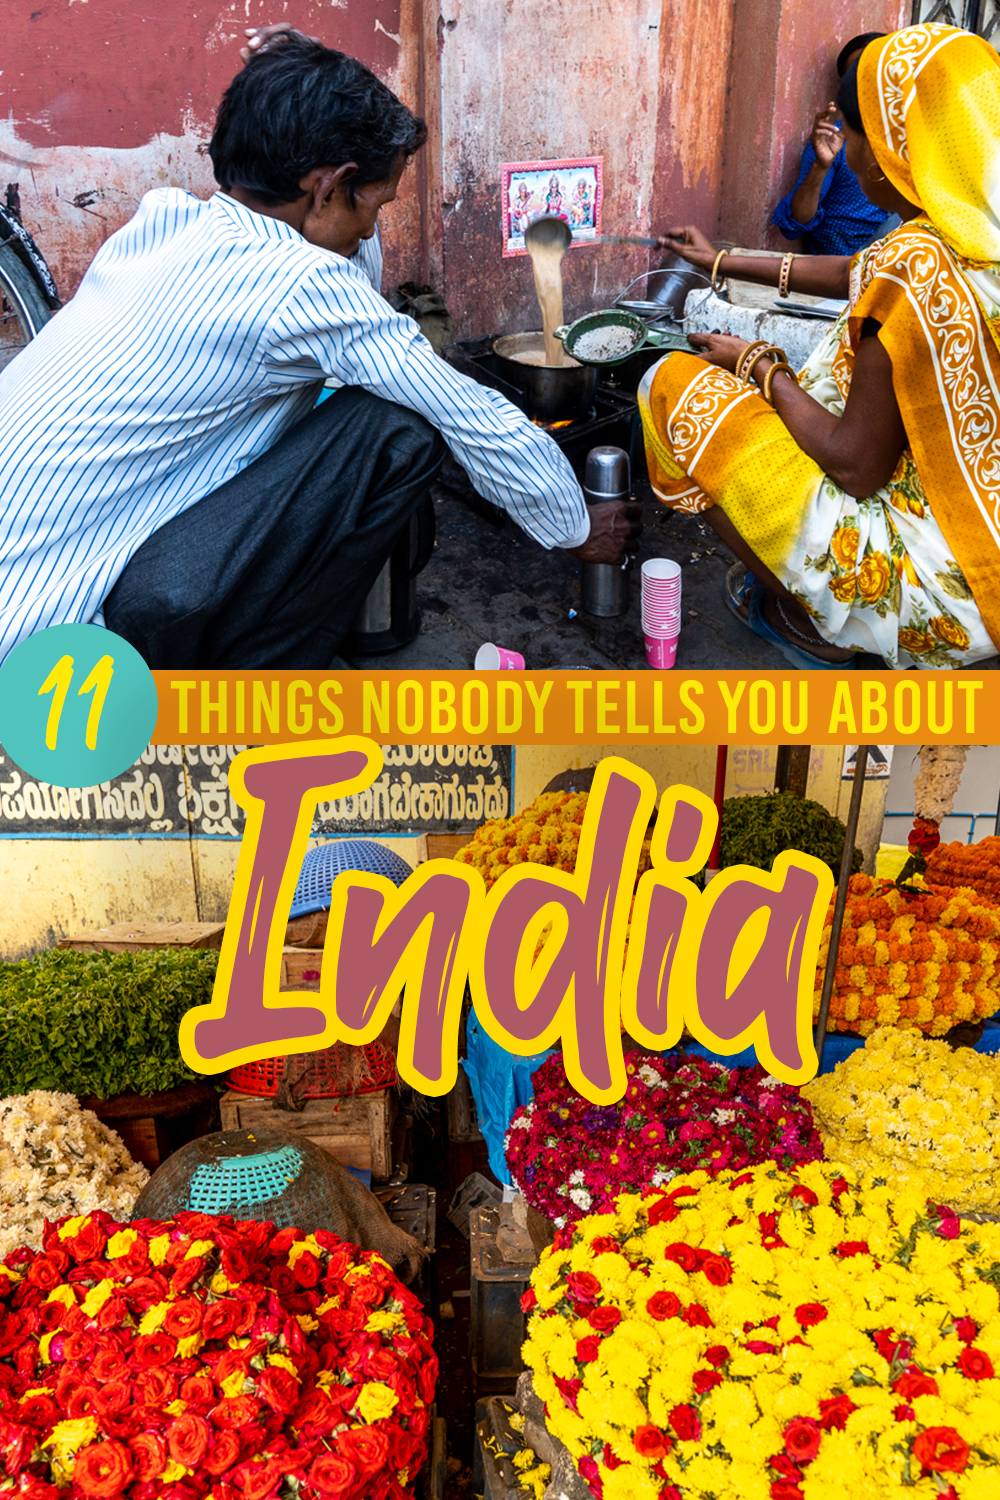 Are you planning a trip to India? Here's 11 things you should know before traveling to India. Click through for India travel tips you might not have heard of! #Indiatraveltips #backpackingIndia #Indiatravel #Indiatrip